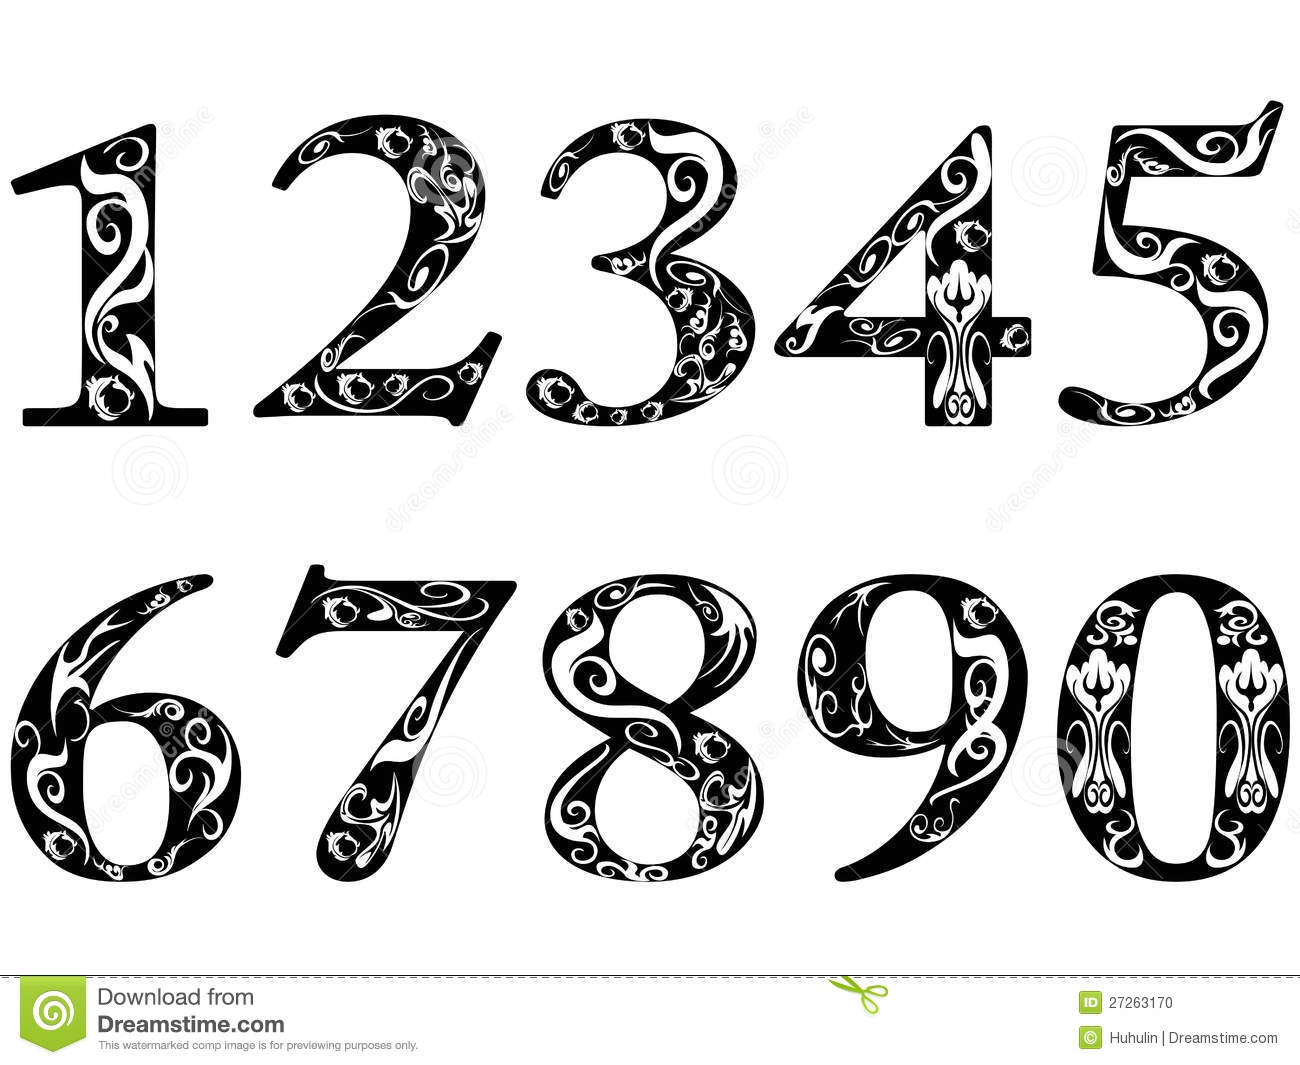 Vintage Number Fonts on Latest Different Writing Styles